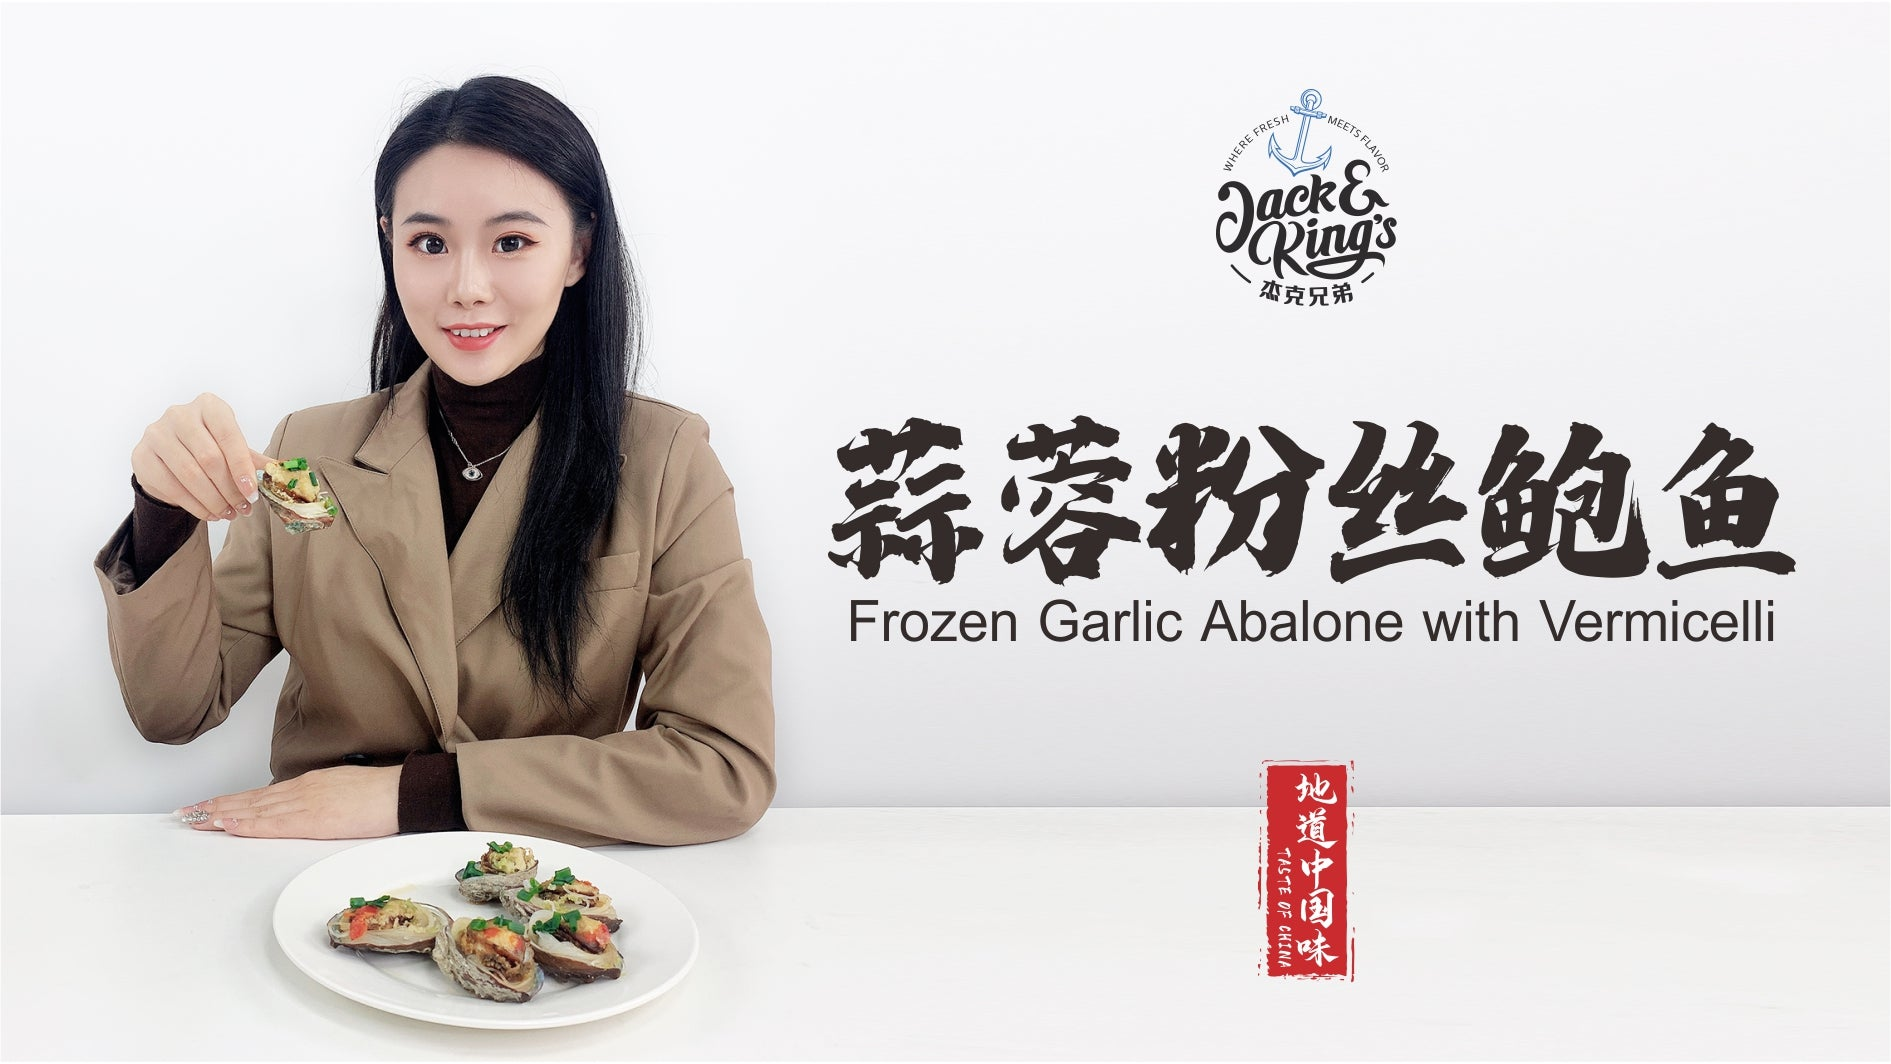 Jack & King's Frozen Garlic Abalone with Vermicelli